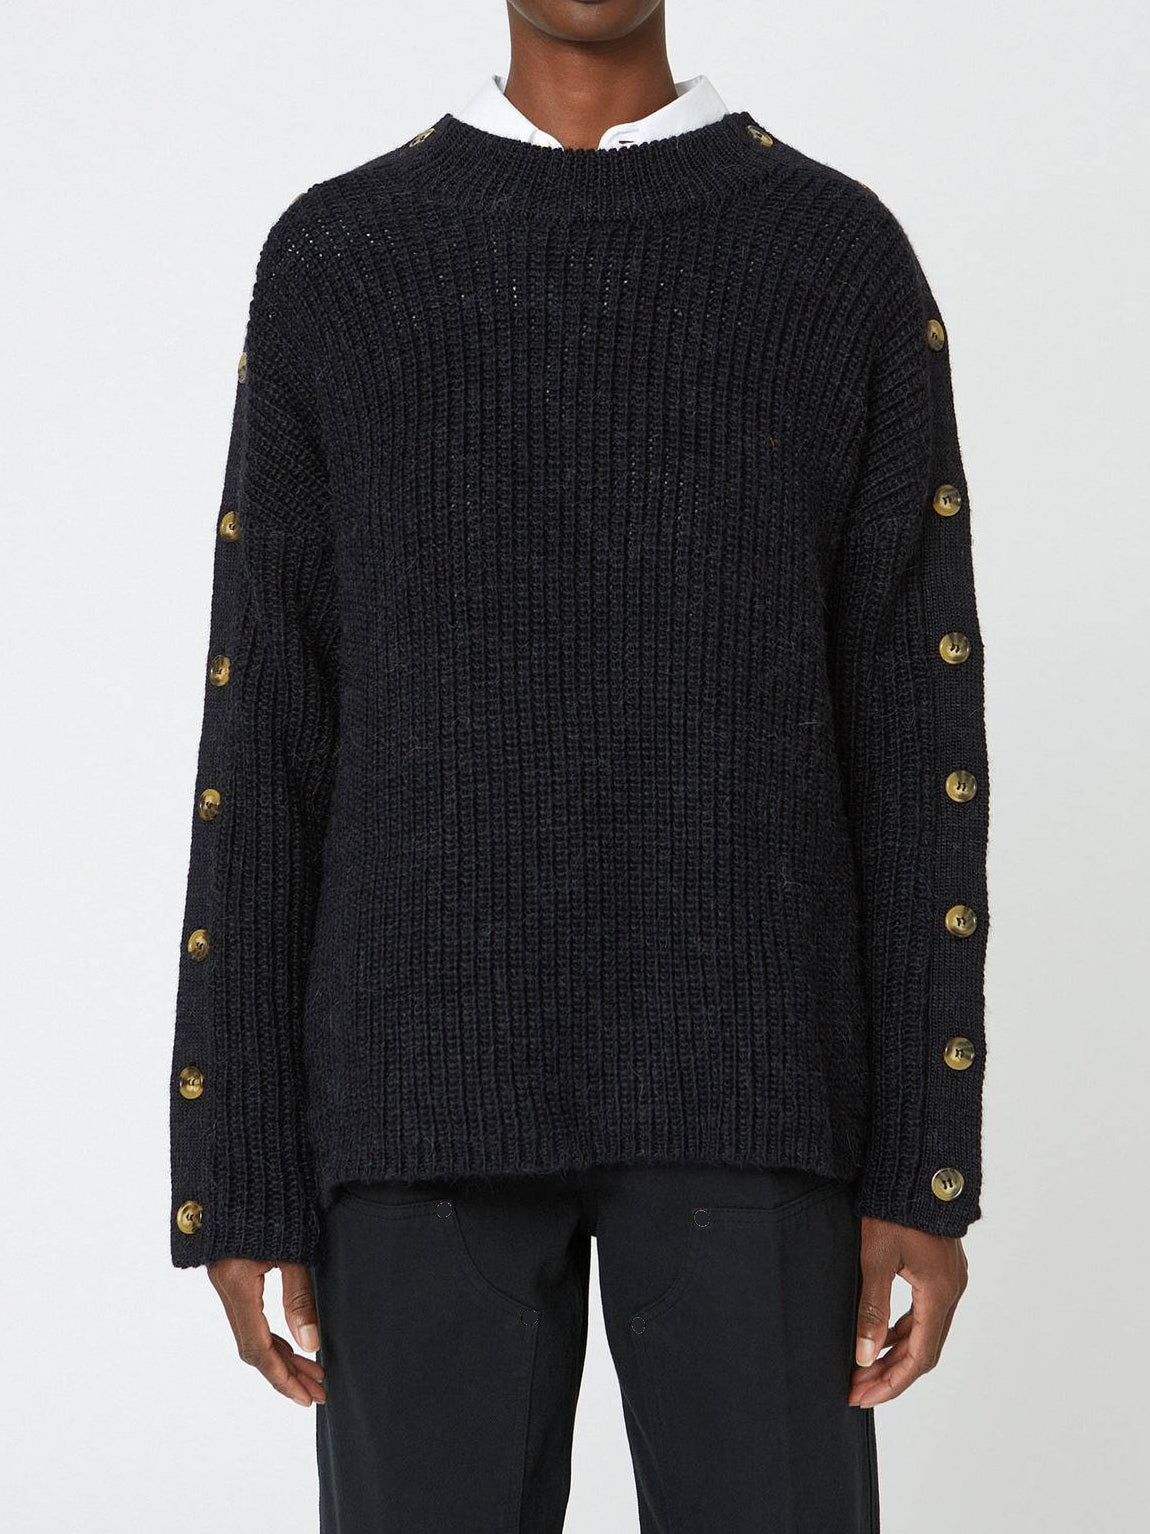 Part Sweater